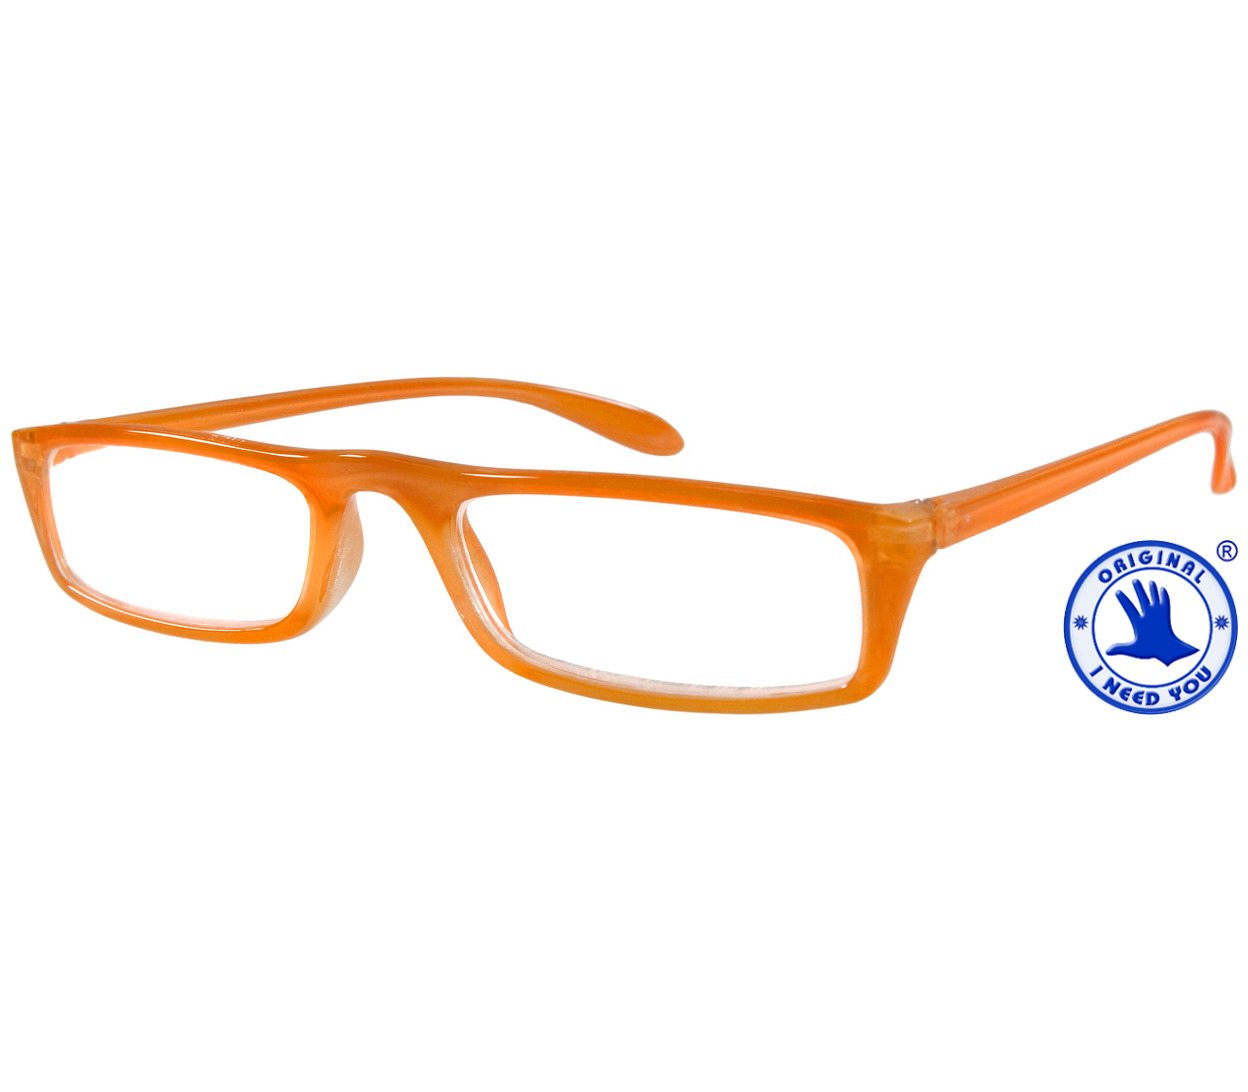 Main Image (Angle) - Florida (Orange) Classic Reading Glasses